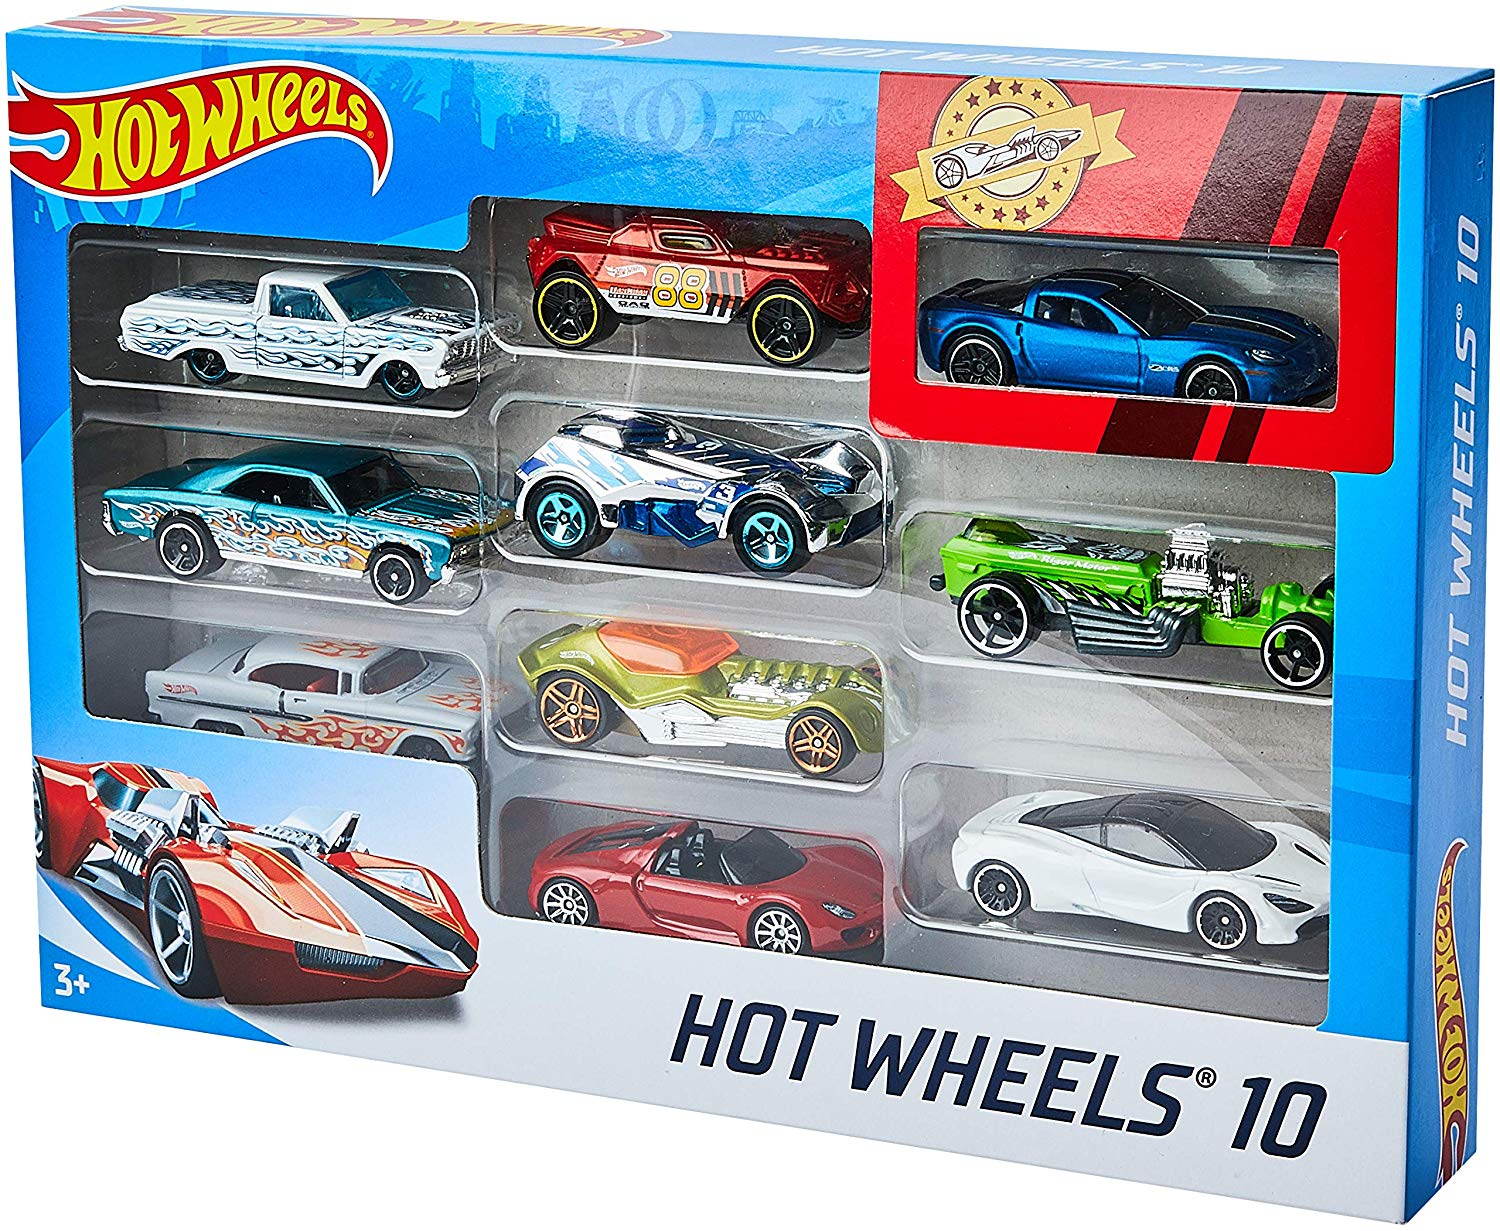 Hot Wheels Modell Autos amazon